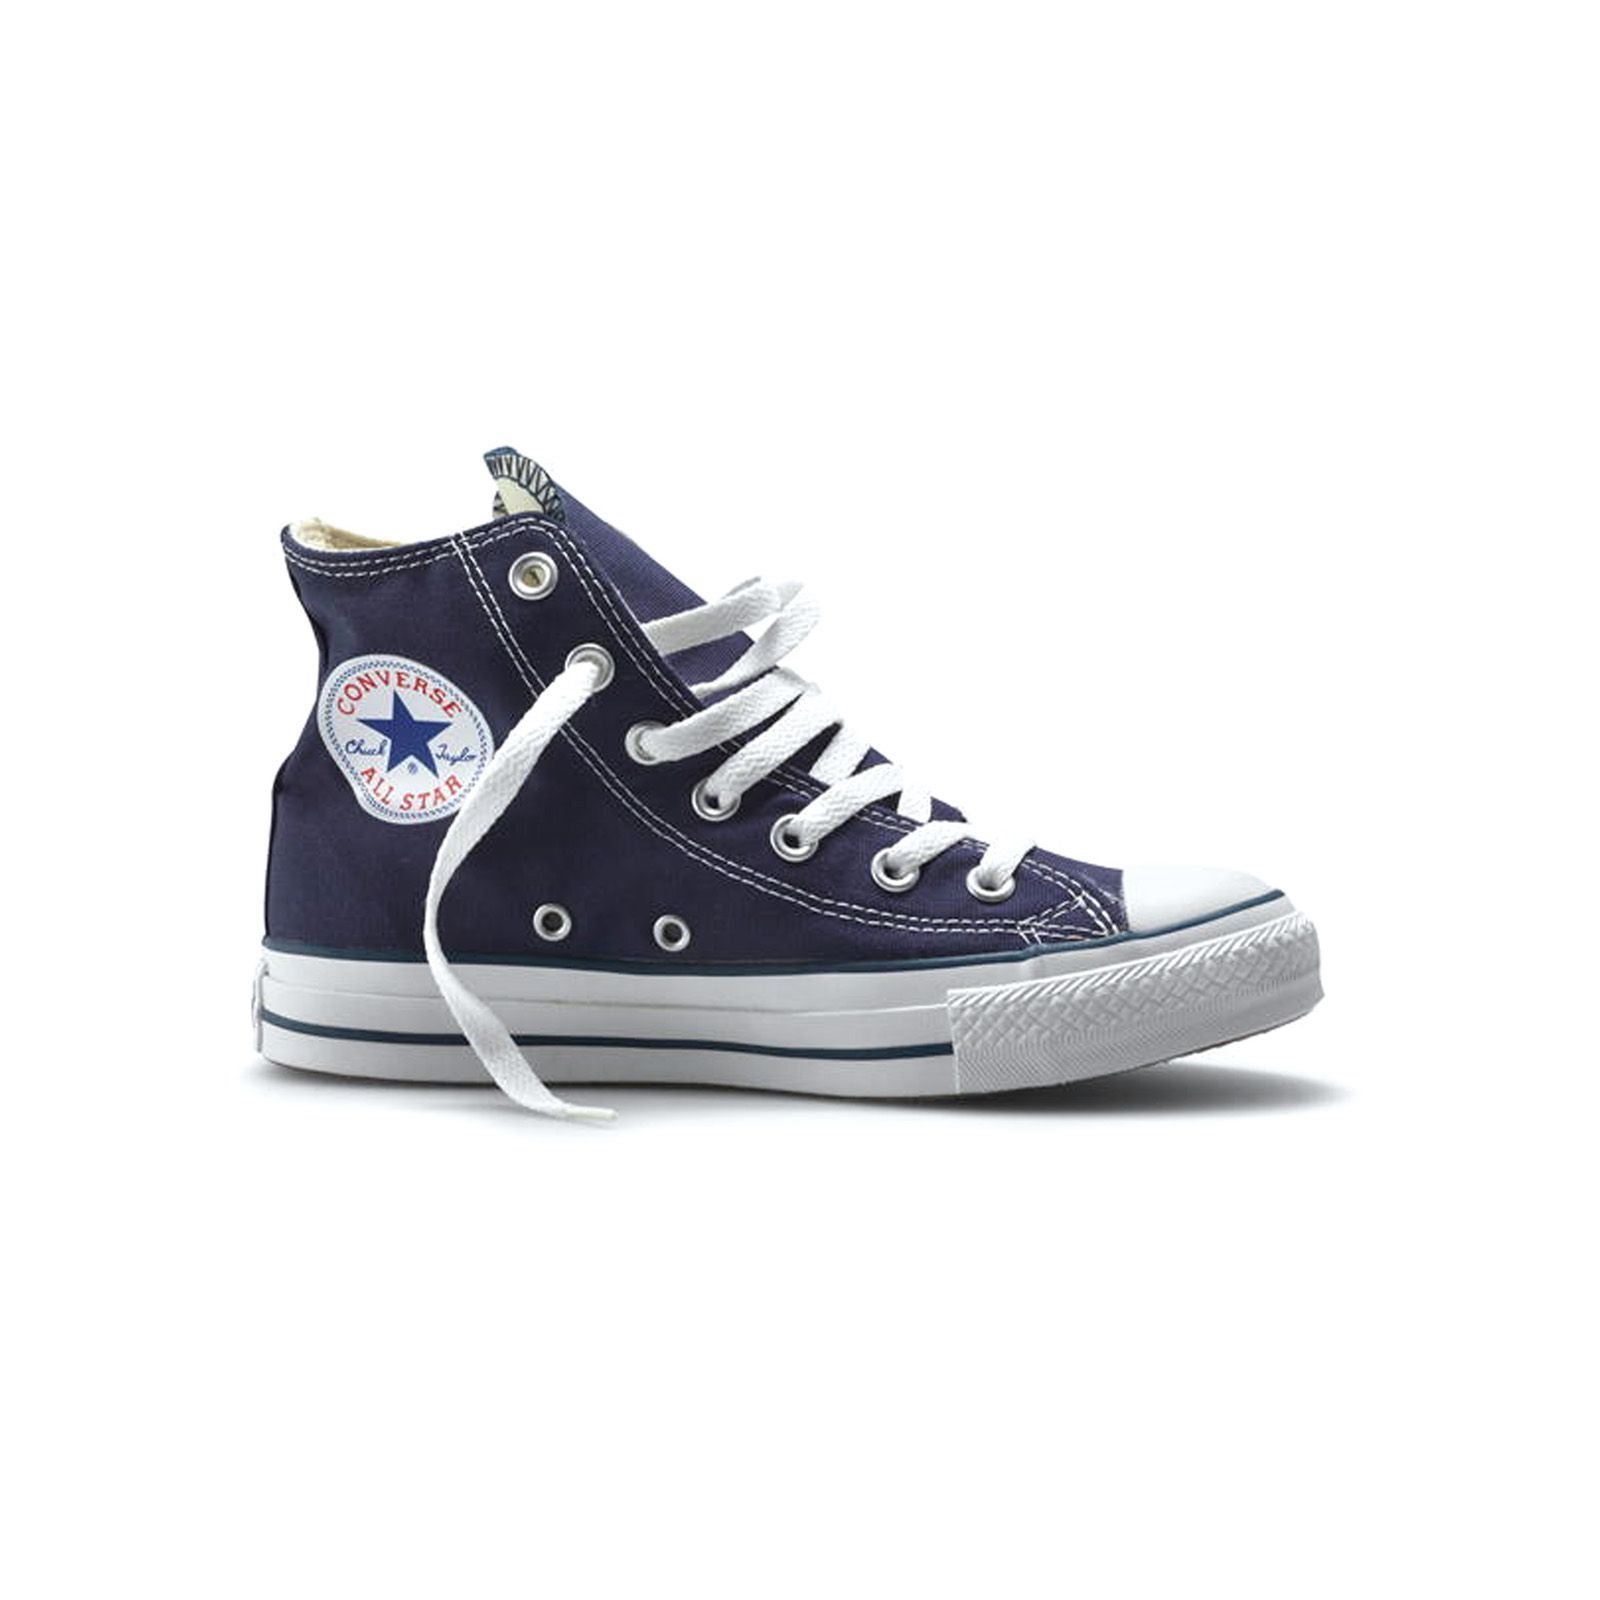 converse ctas hi baskets mode montantes bleu marine brandalley. Black Bedroom Furniture Sets. Home Design Ideas